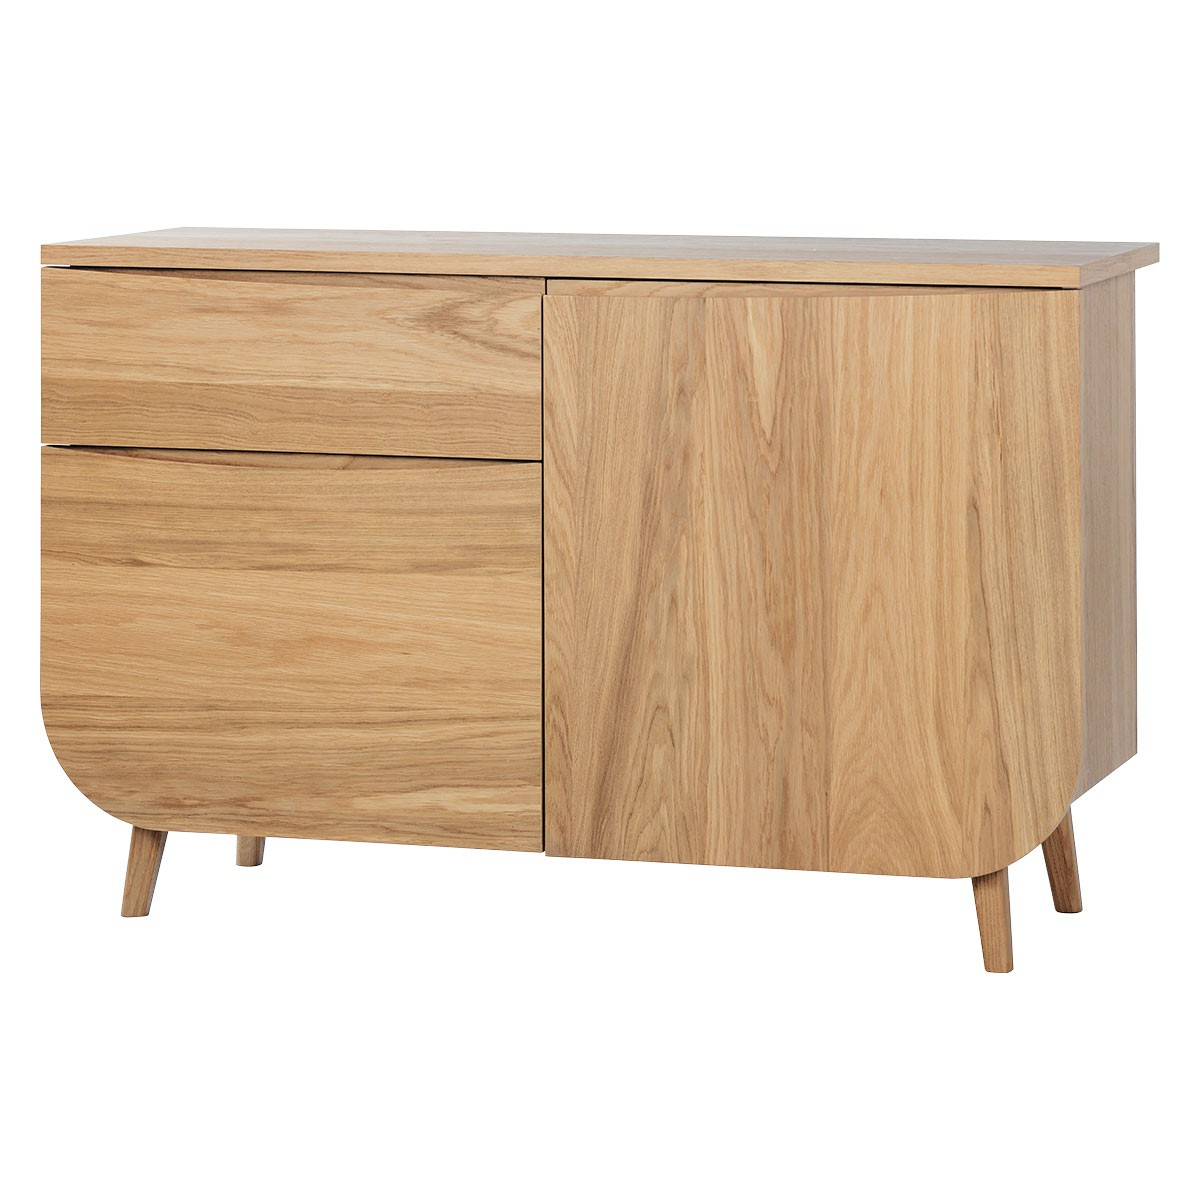 Trendy Etta Oak Curved Sideboard With 2 Doors And 1 Drawer (View 11 of 20)